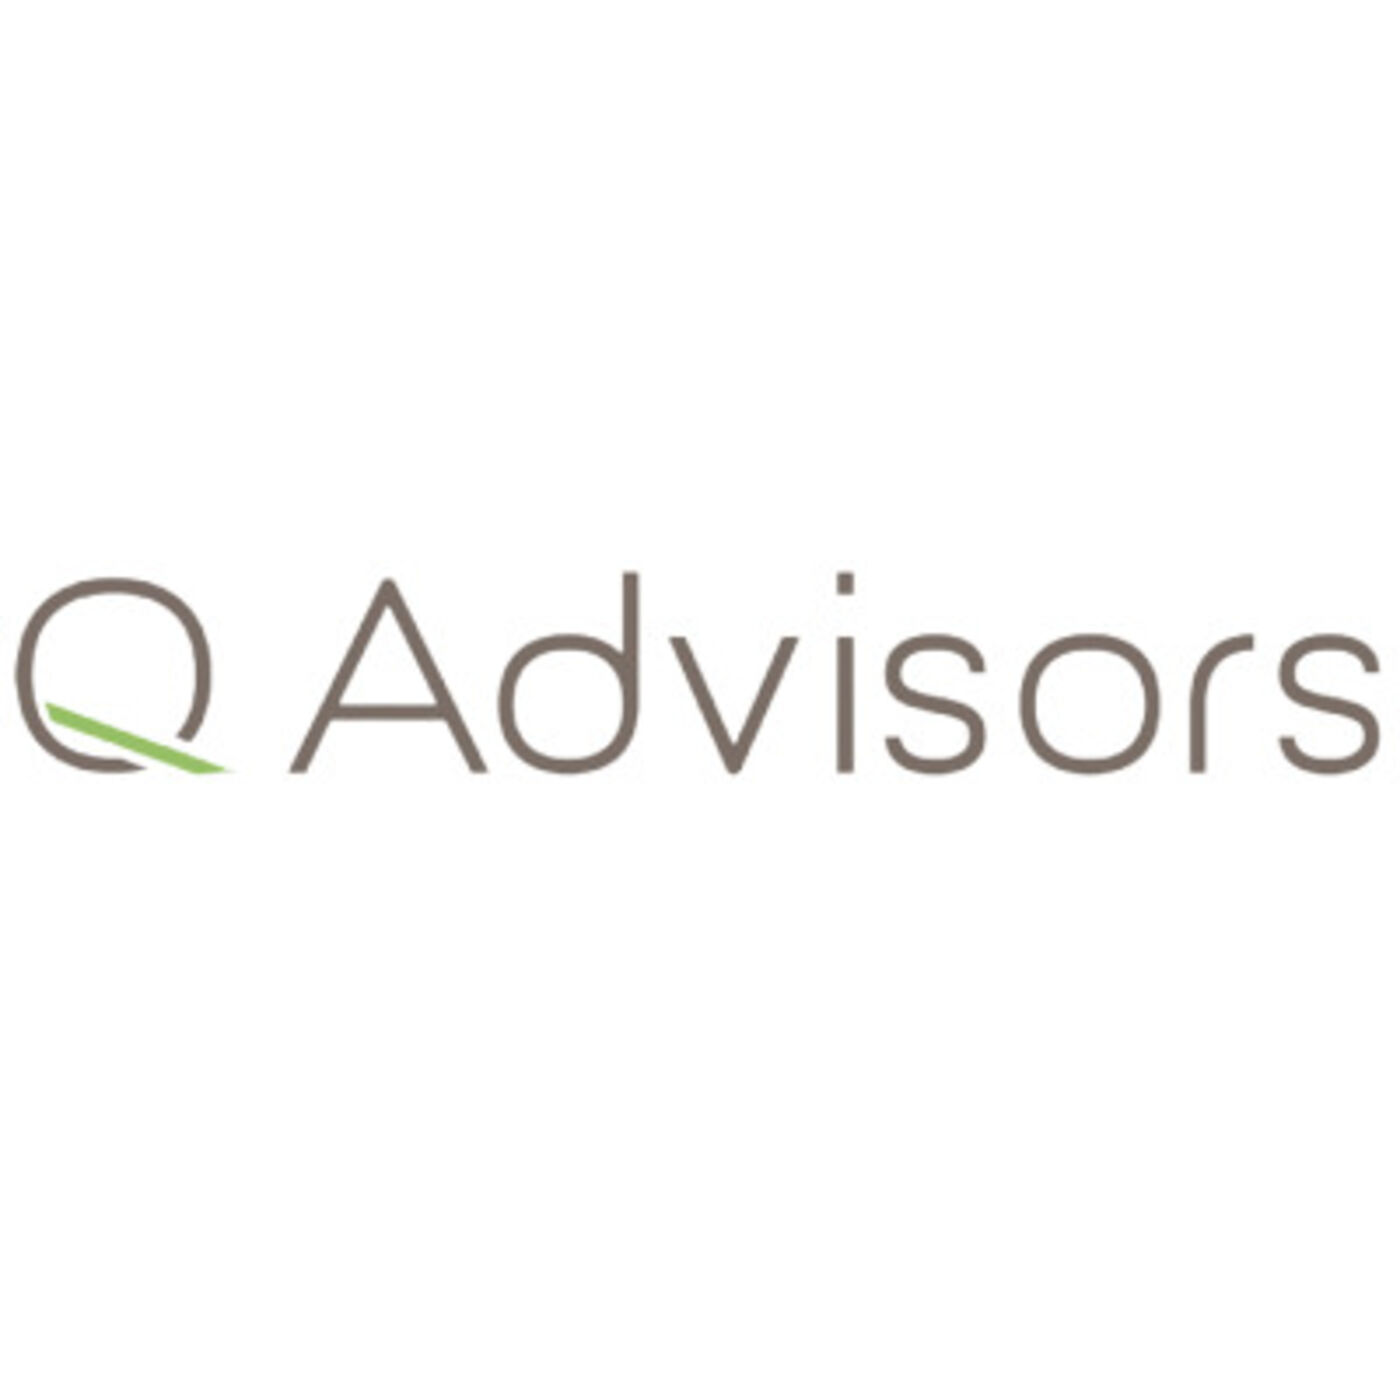 Q Advisors Predicts the Acceleration of M&A Global Transactions in 2021